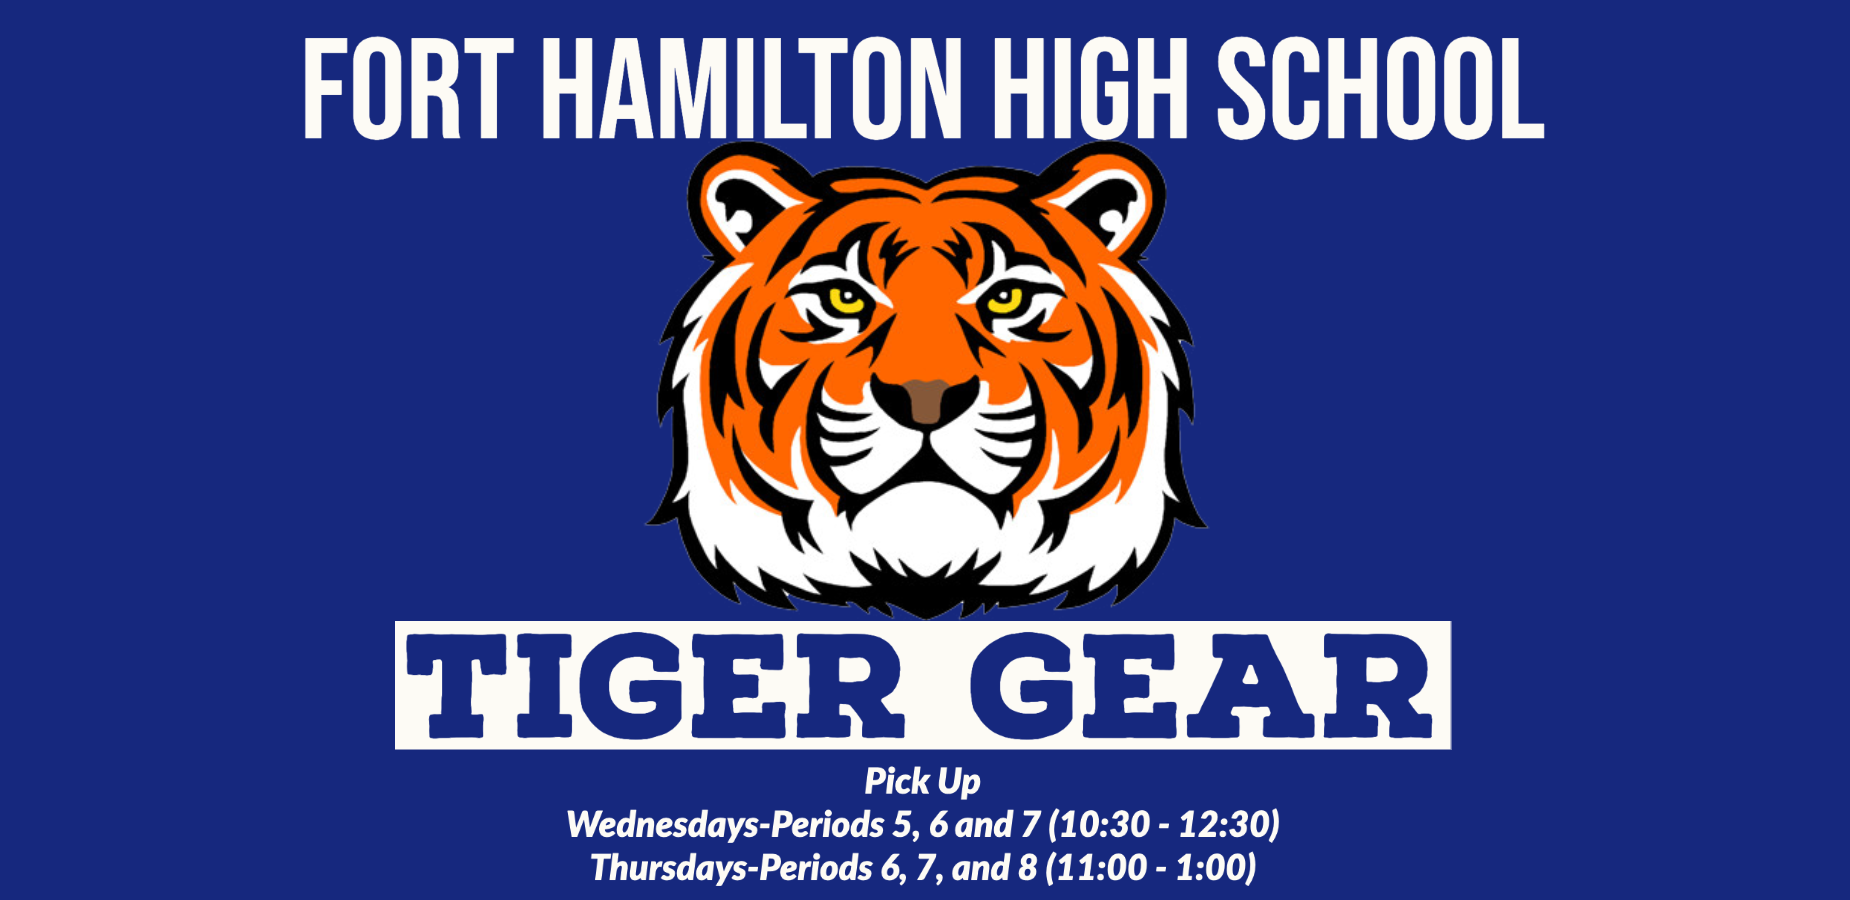 Tiger Gear Pick up Wednesdays  Periods 5, 6 and 7 10:30 - 12:30 Thursdays- Periods 6, 7, and 8 11:00 - 1:00